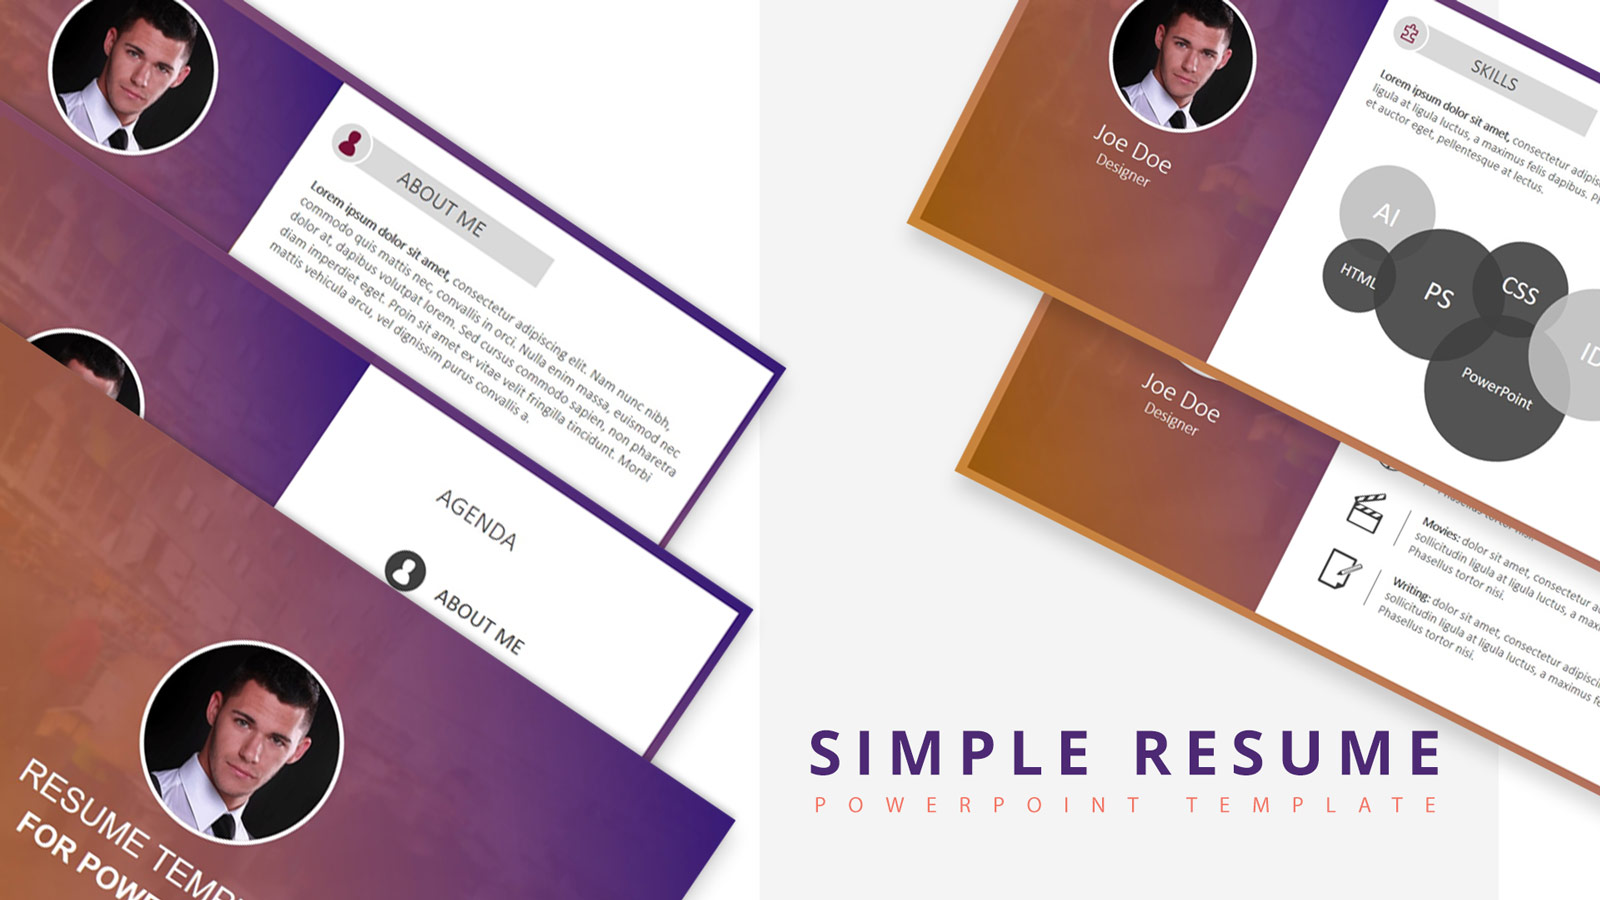 Download Free Simple Resume PowerPoint Template